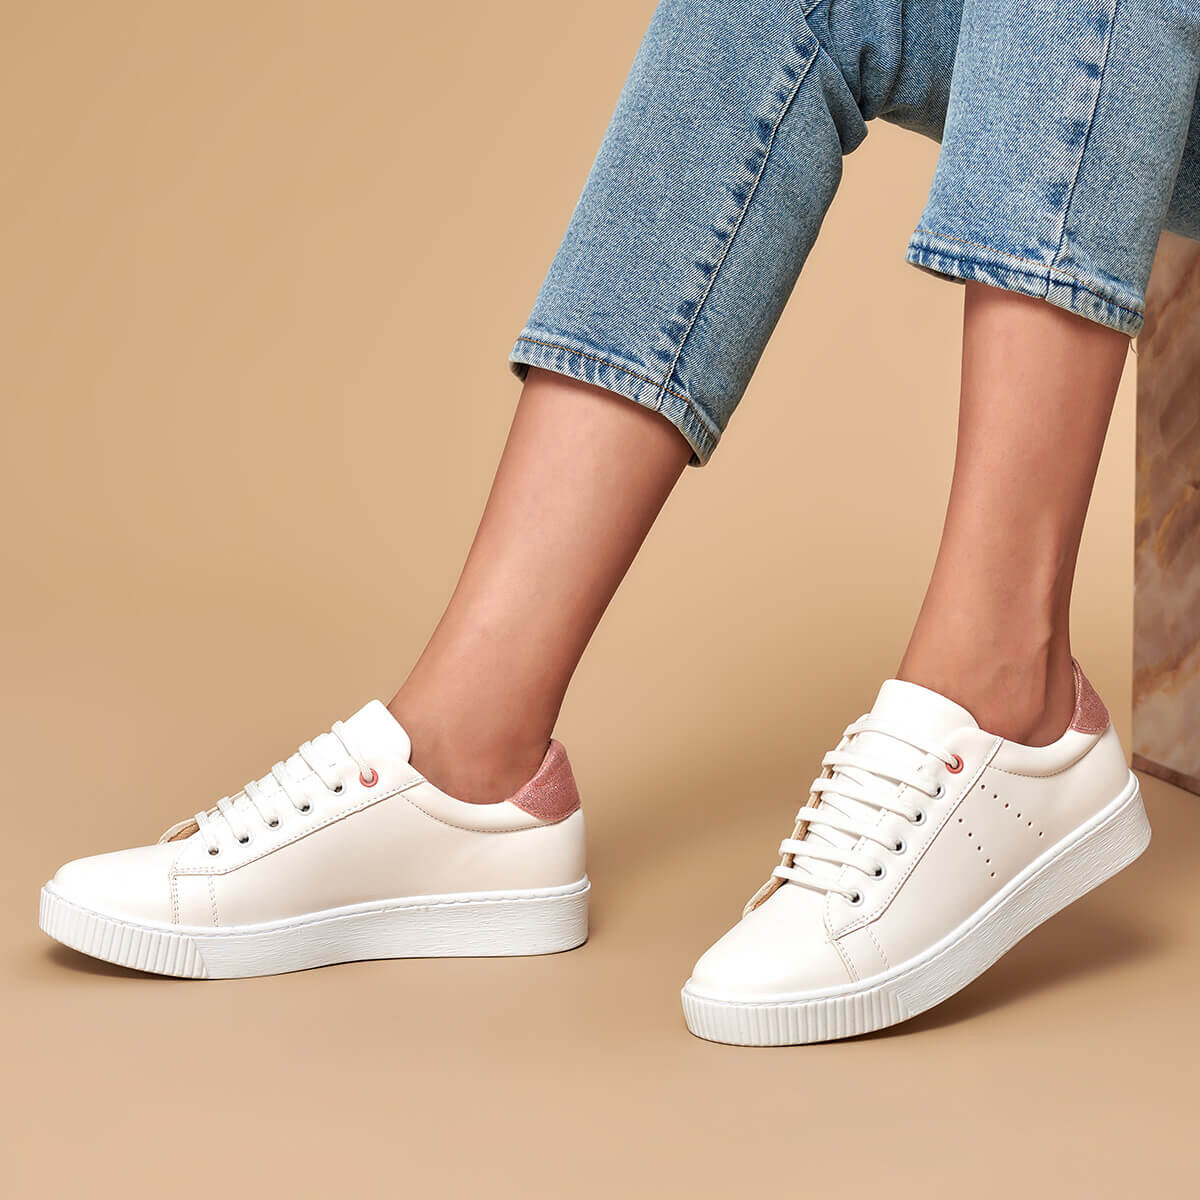 FLO 19K-405 White Women 'S Sneaker Shoes BUTIGO